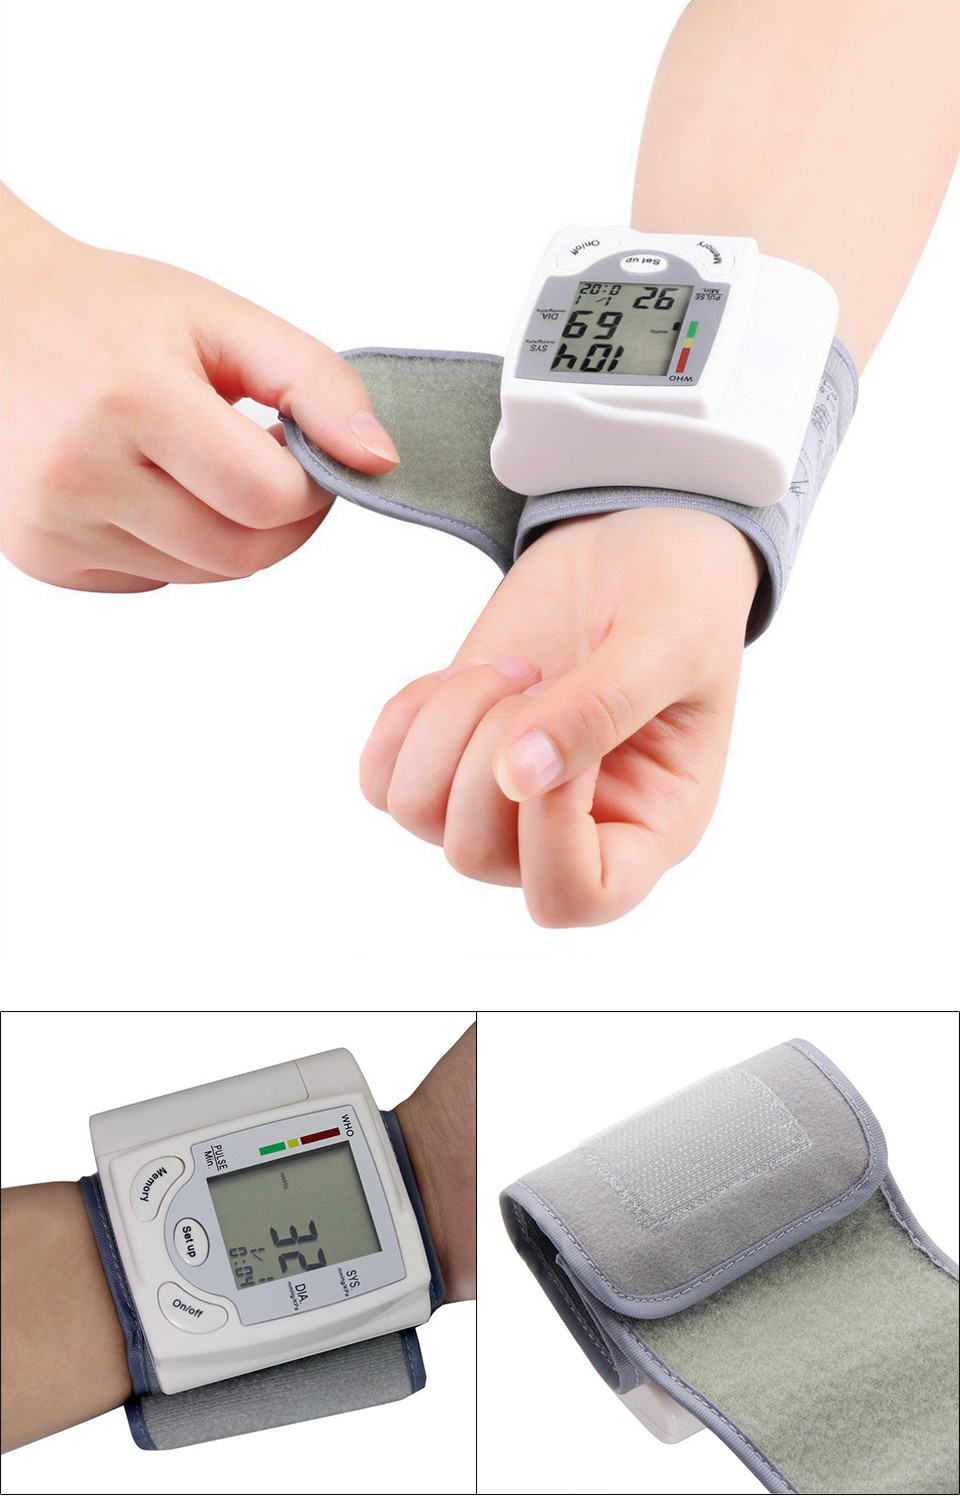 Professional Health Care Wrist Portable Digital Automatic Blood Pressure Monitor Household Type Protect Health2 18